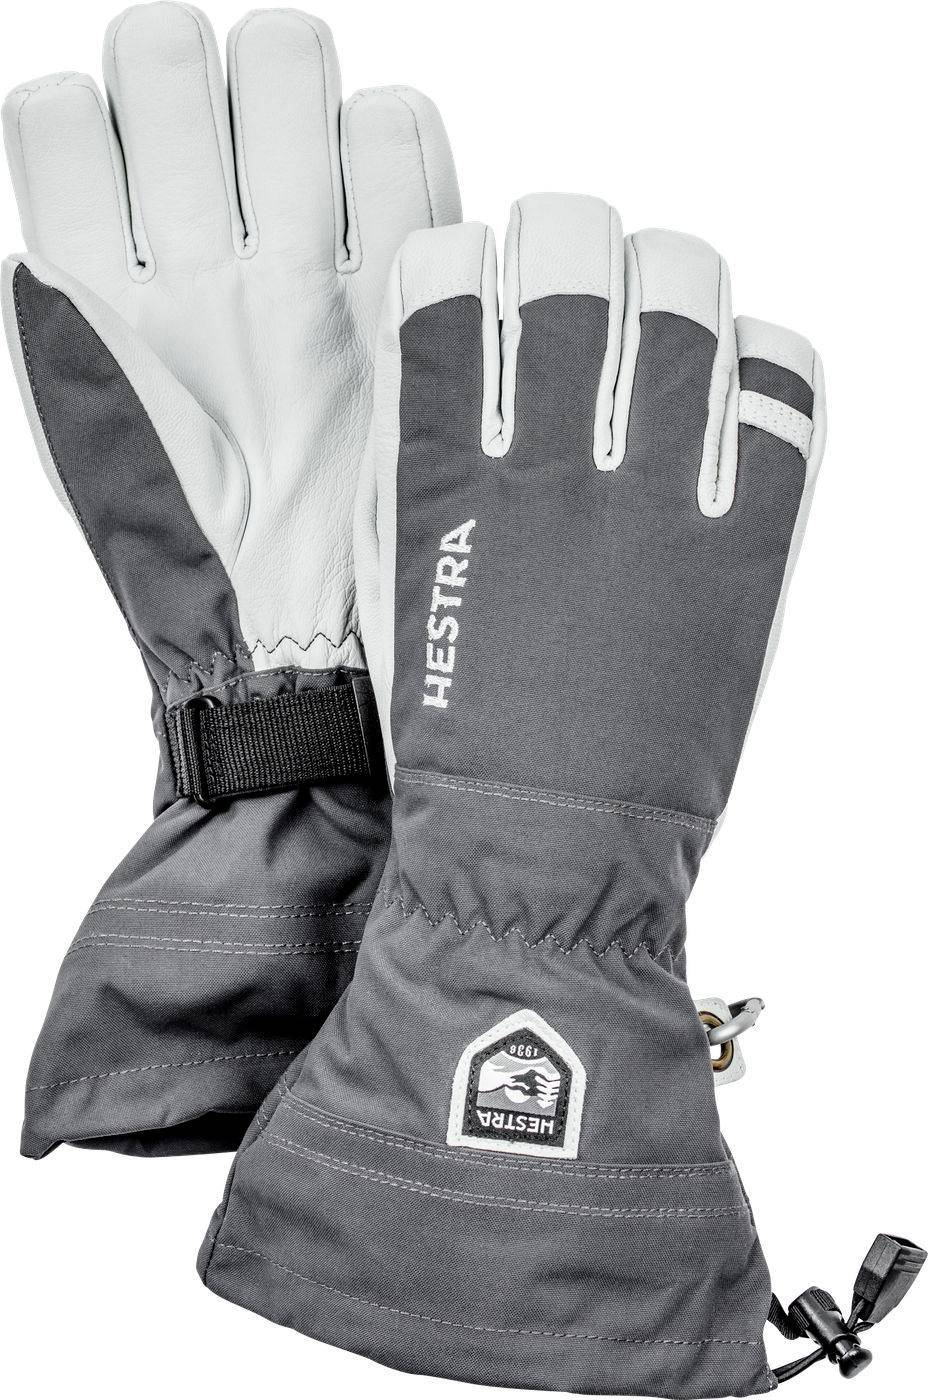 Hestra Army Leather Heli Ski Glove Harmaa 12